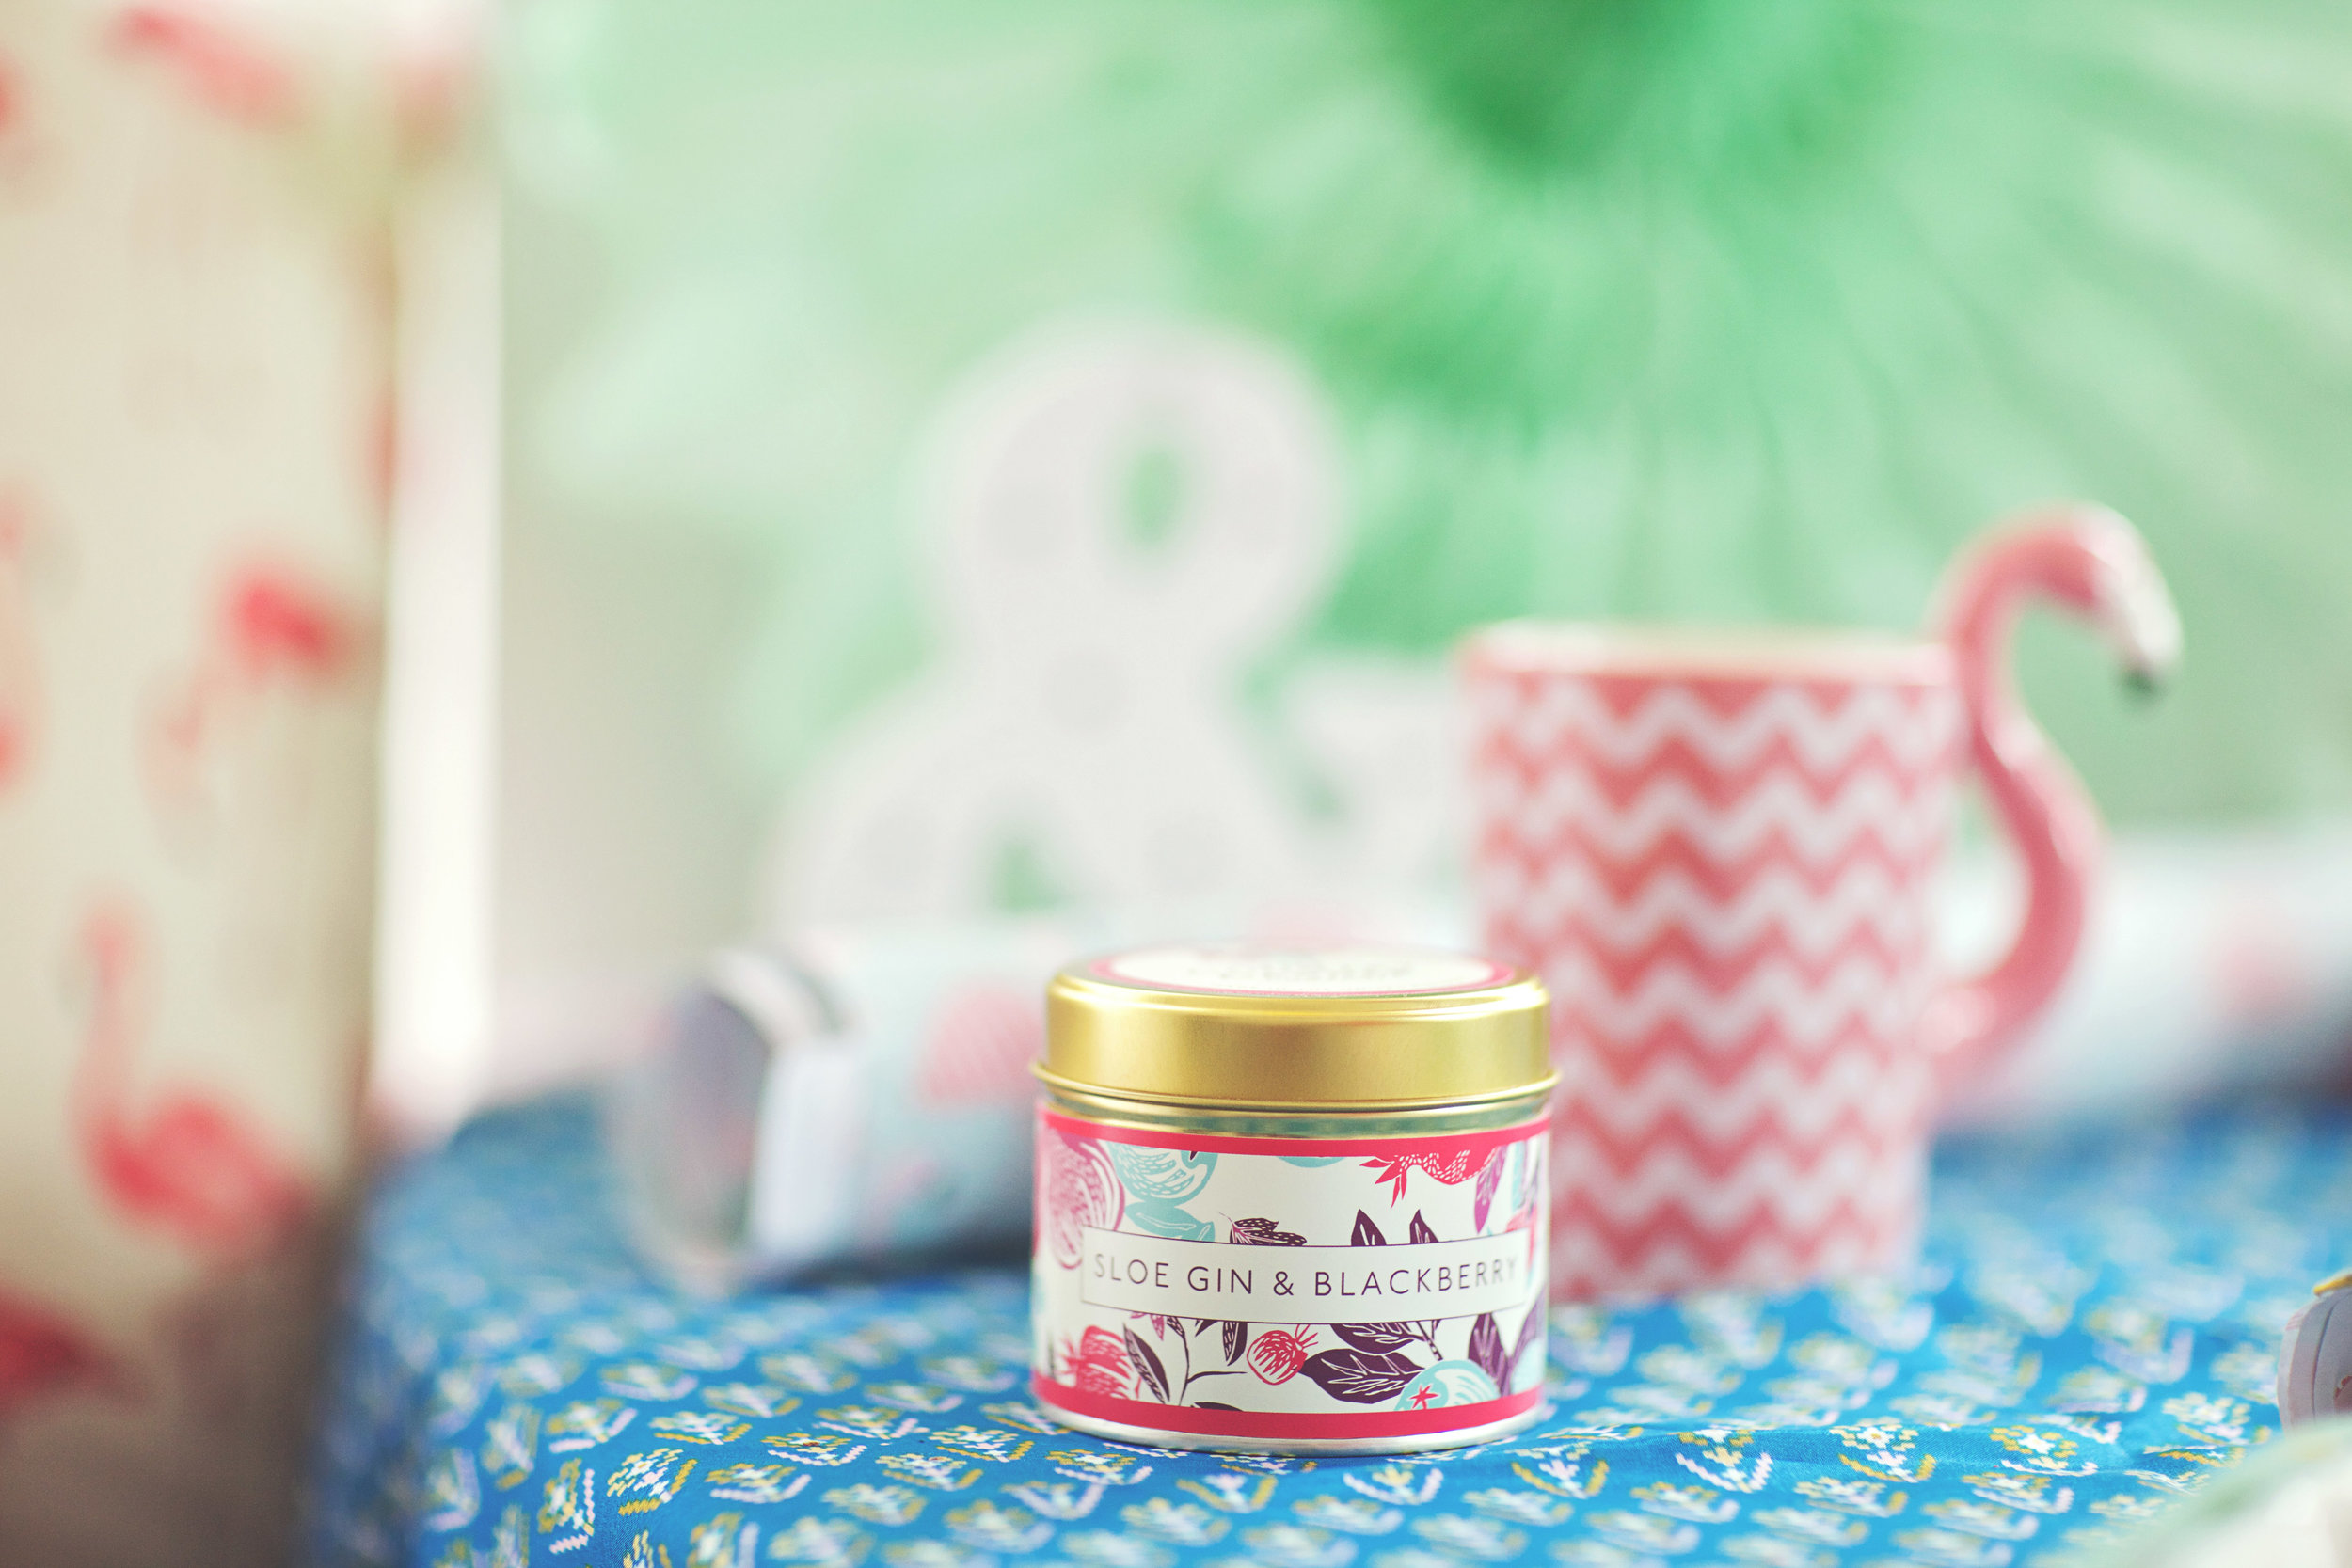 Sloe Gin & Blackberry Country Candle: £12.99 // Flamingo Gift Wrap: £1.75